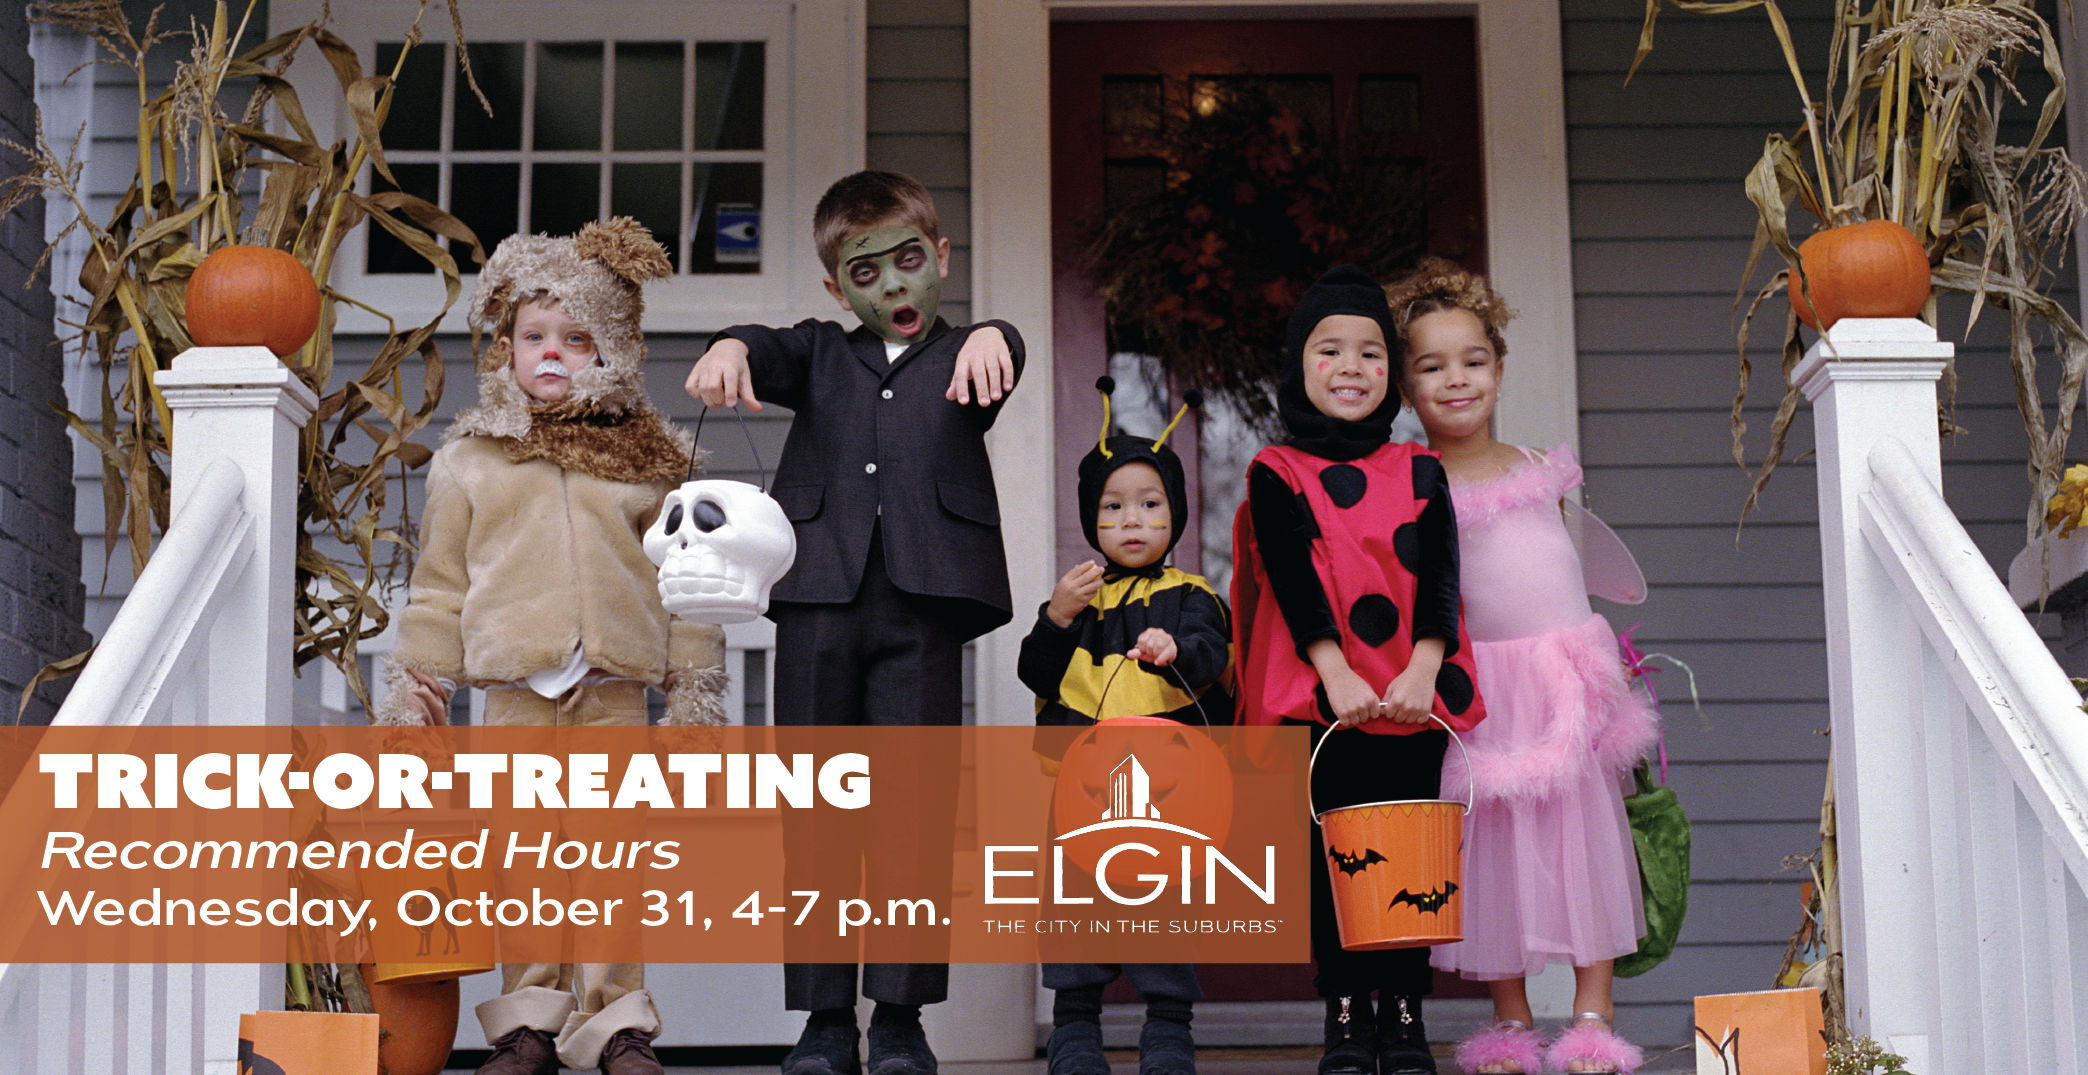 City of Elgin, Illinois - Official Website